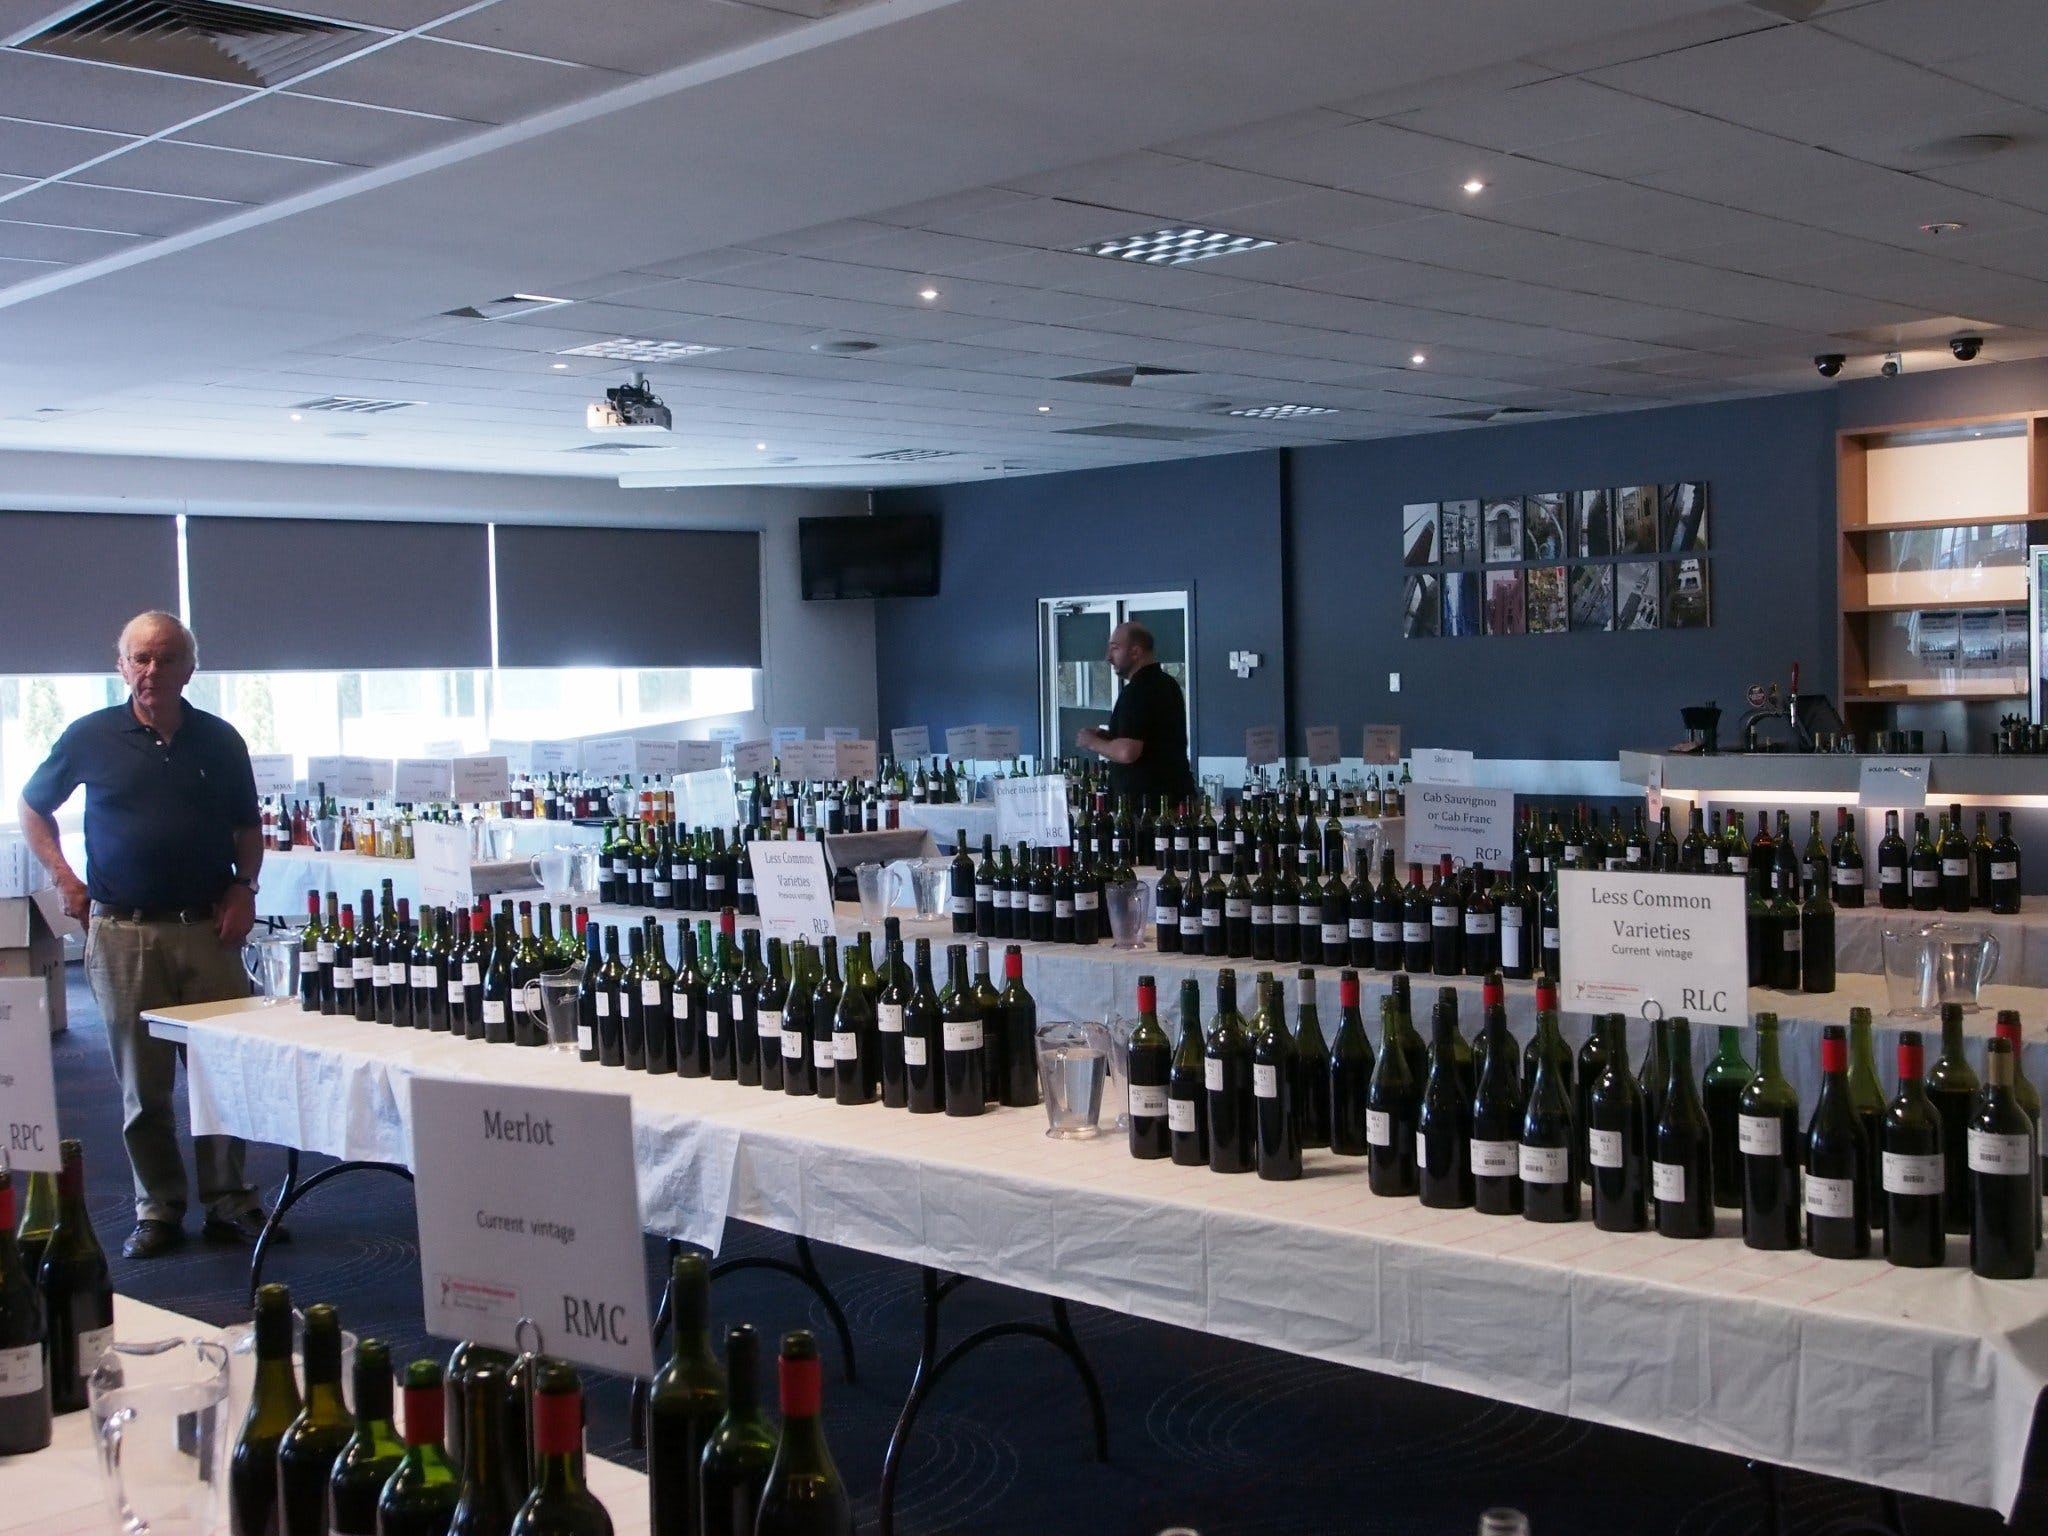 Eltham and District Wine Guild Annual Wine Show - 51st Annual Show - VIC Tourism